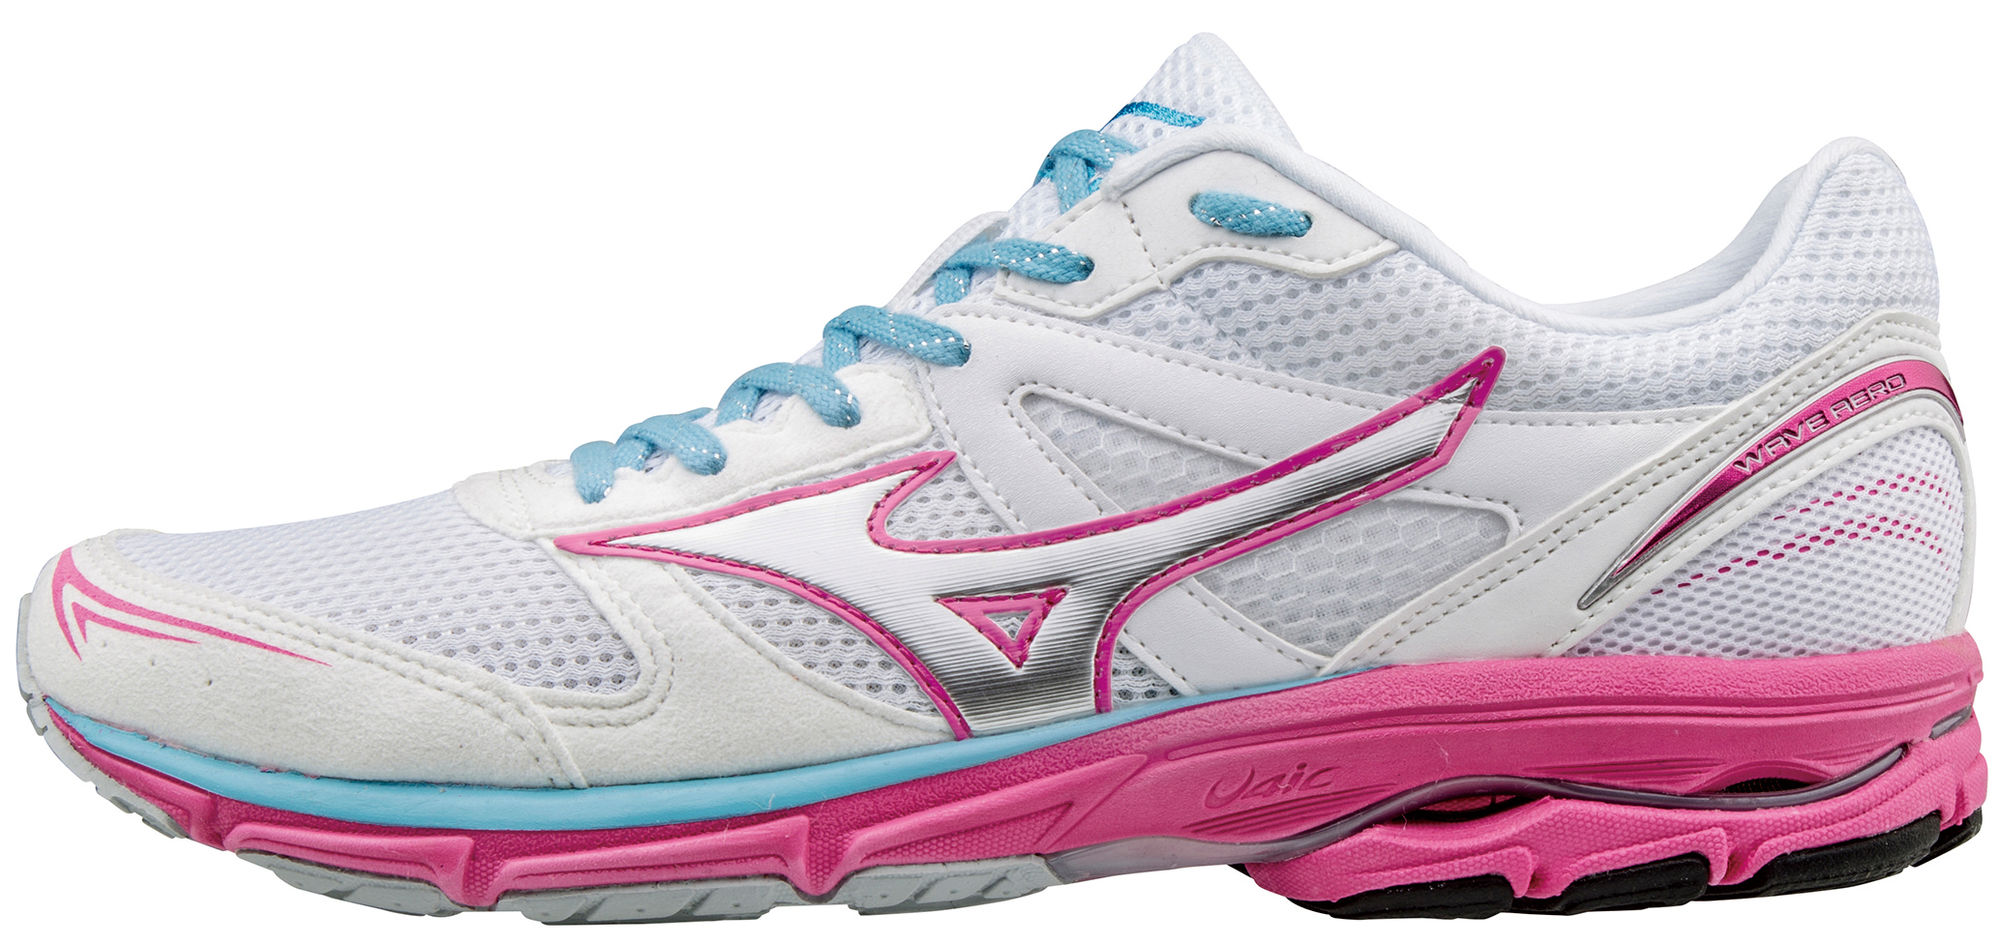 Mizuno Lady Wave Aero 15 in Weiß